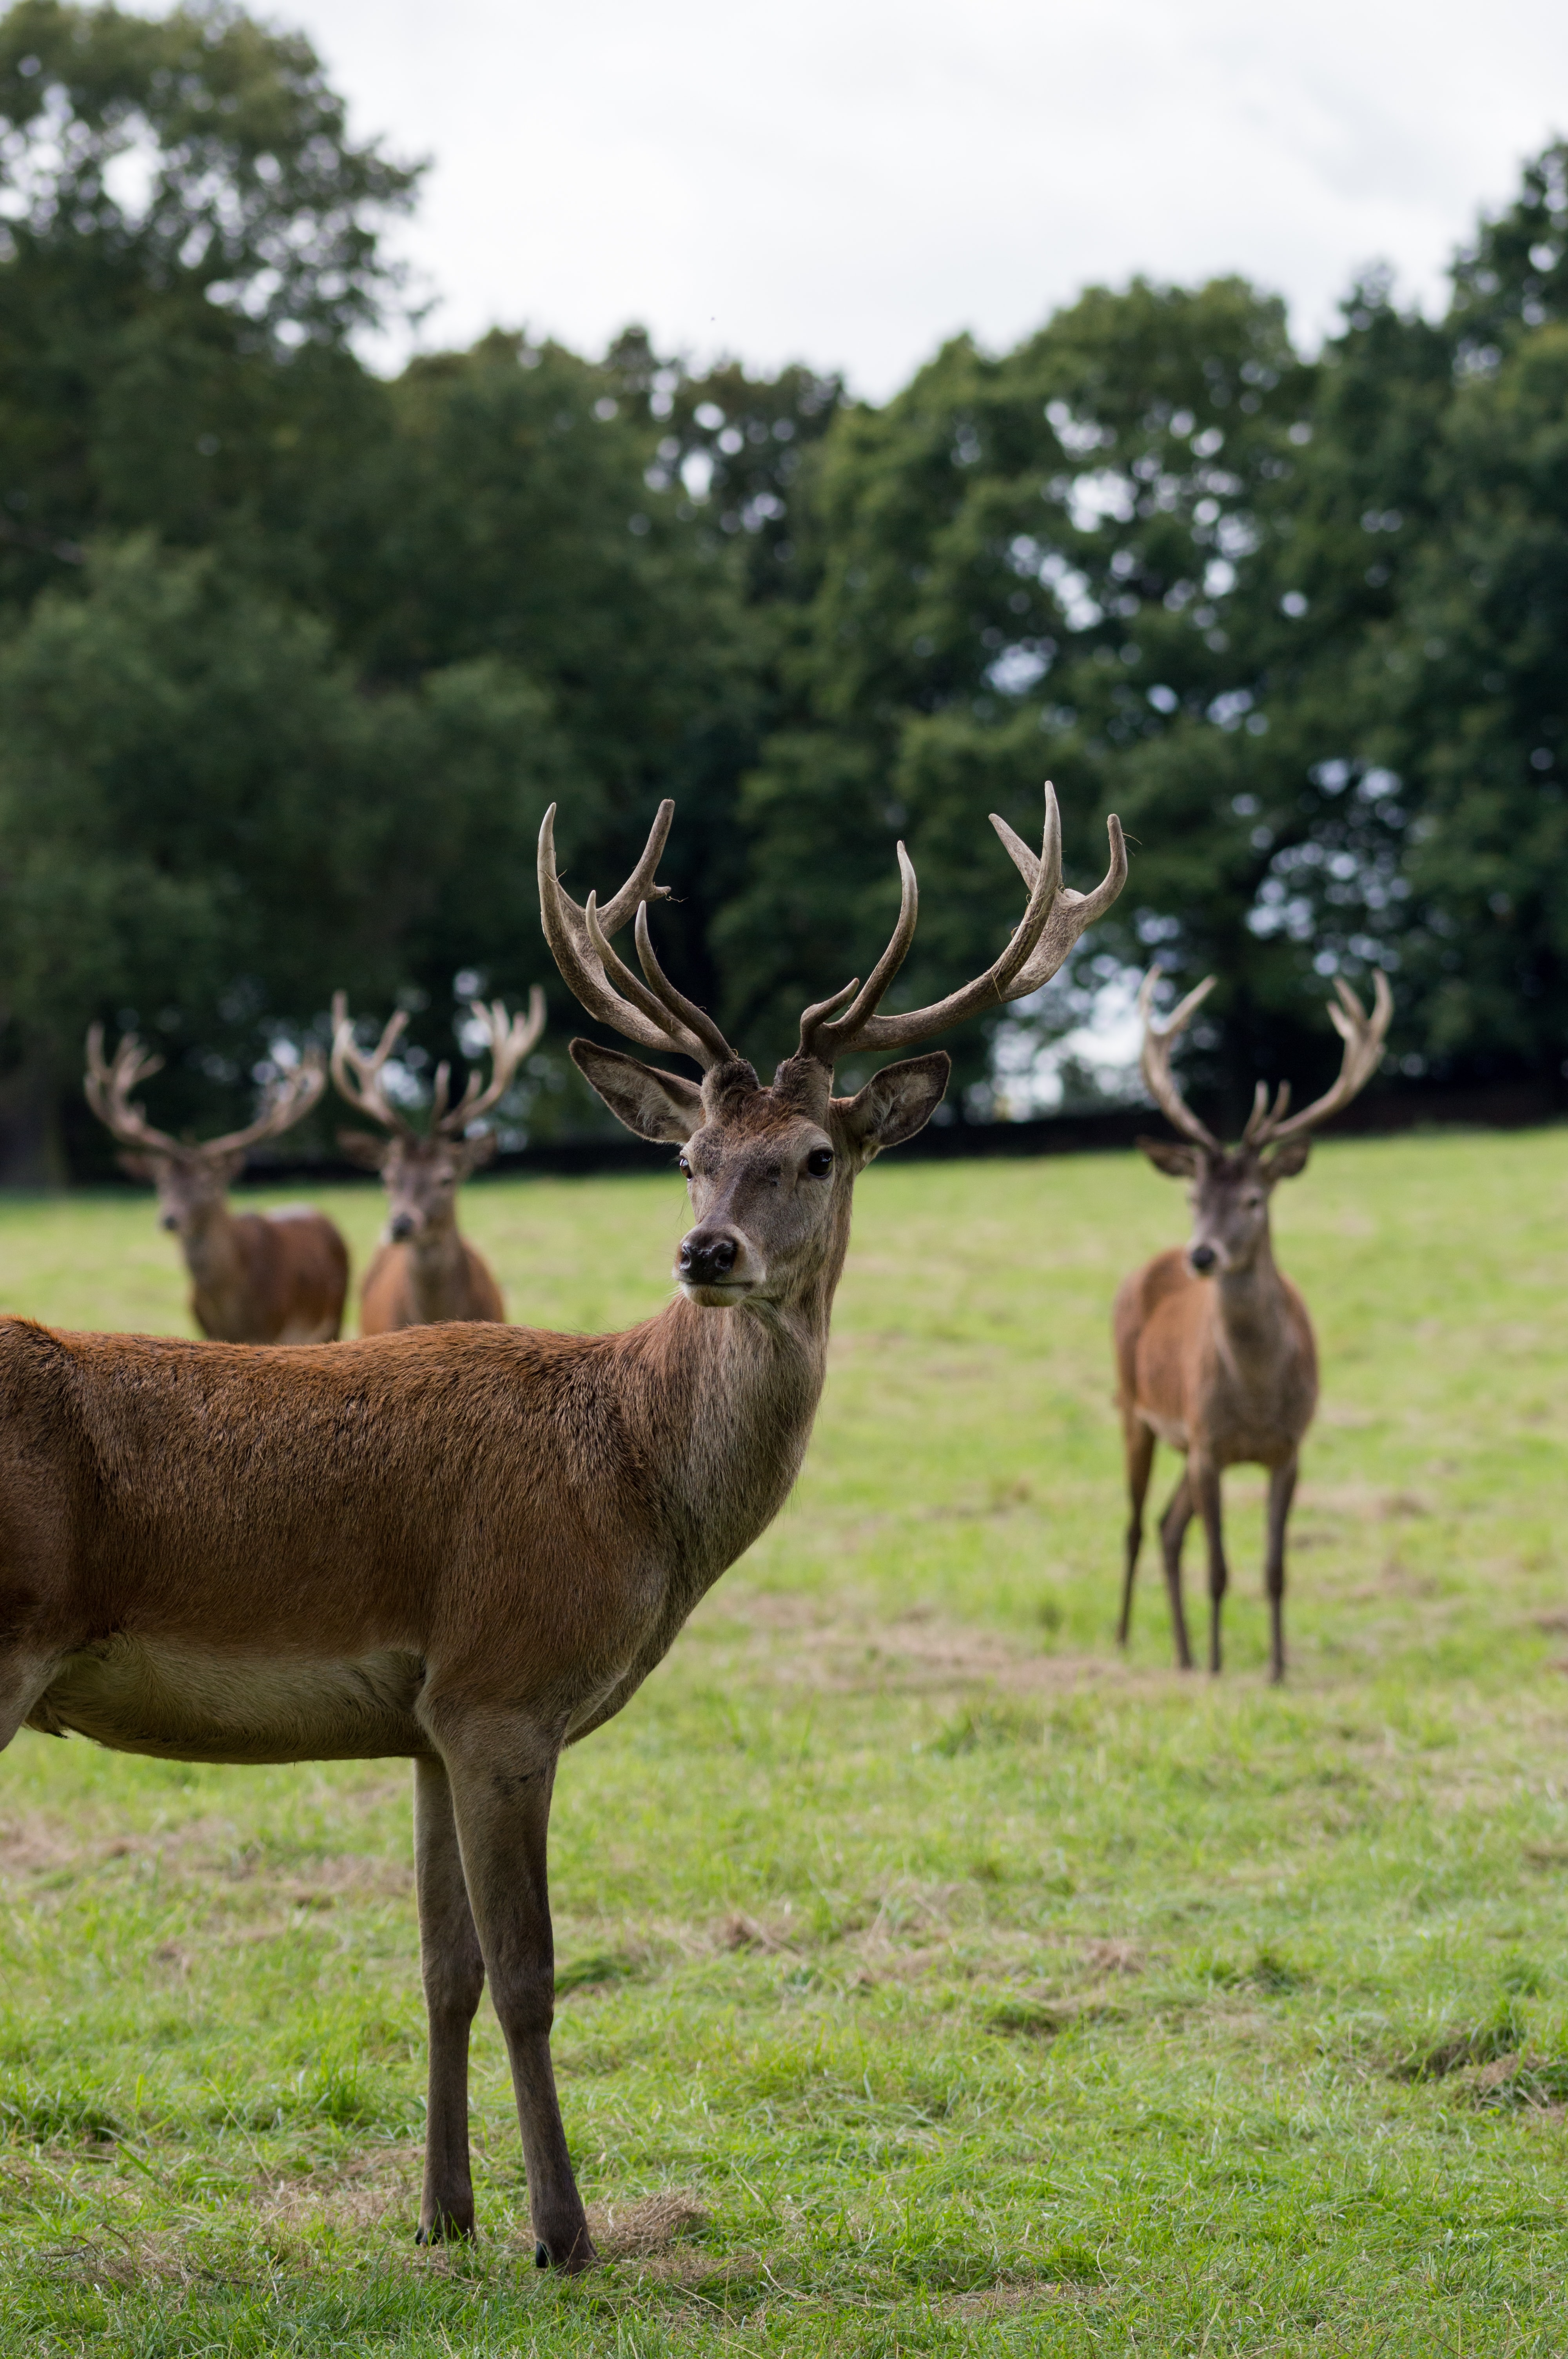 four brown deers standing on grass near trees